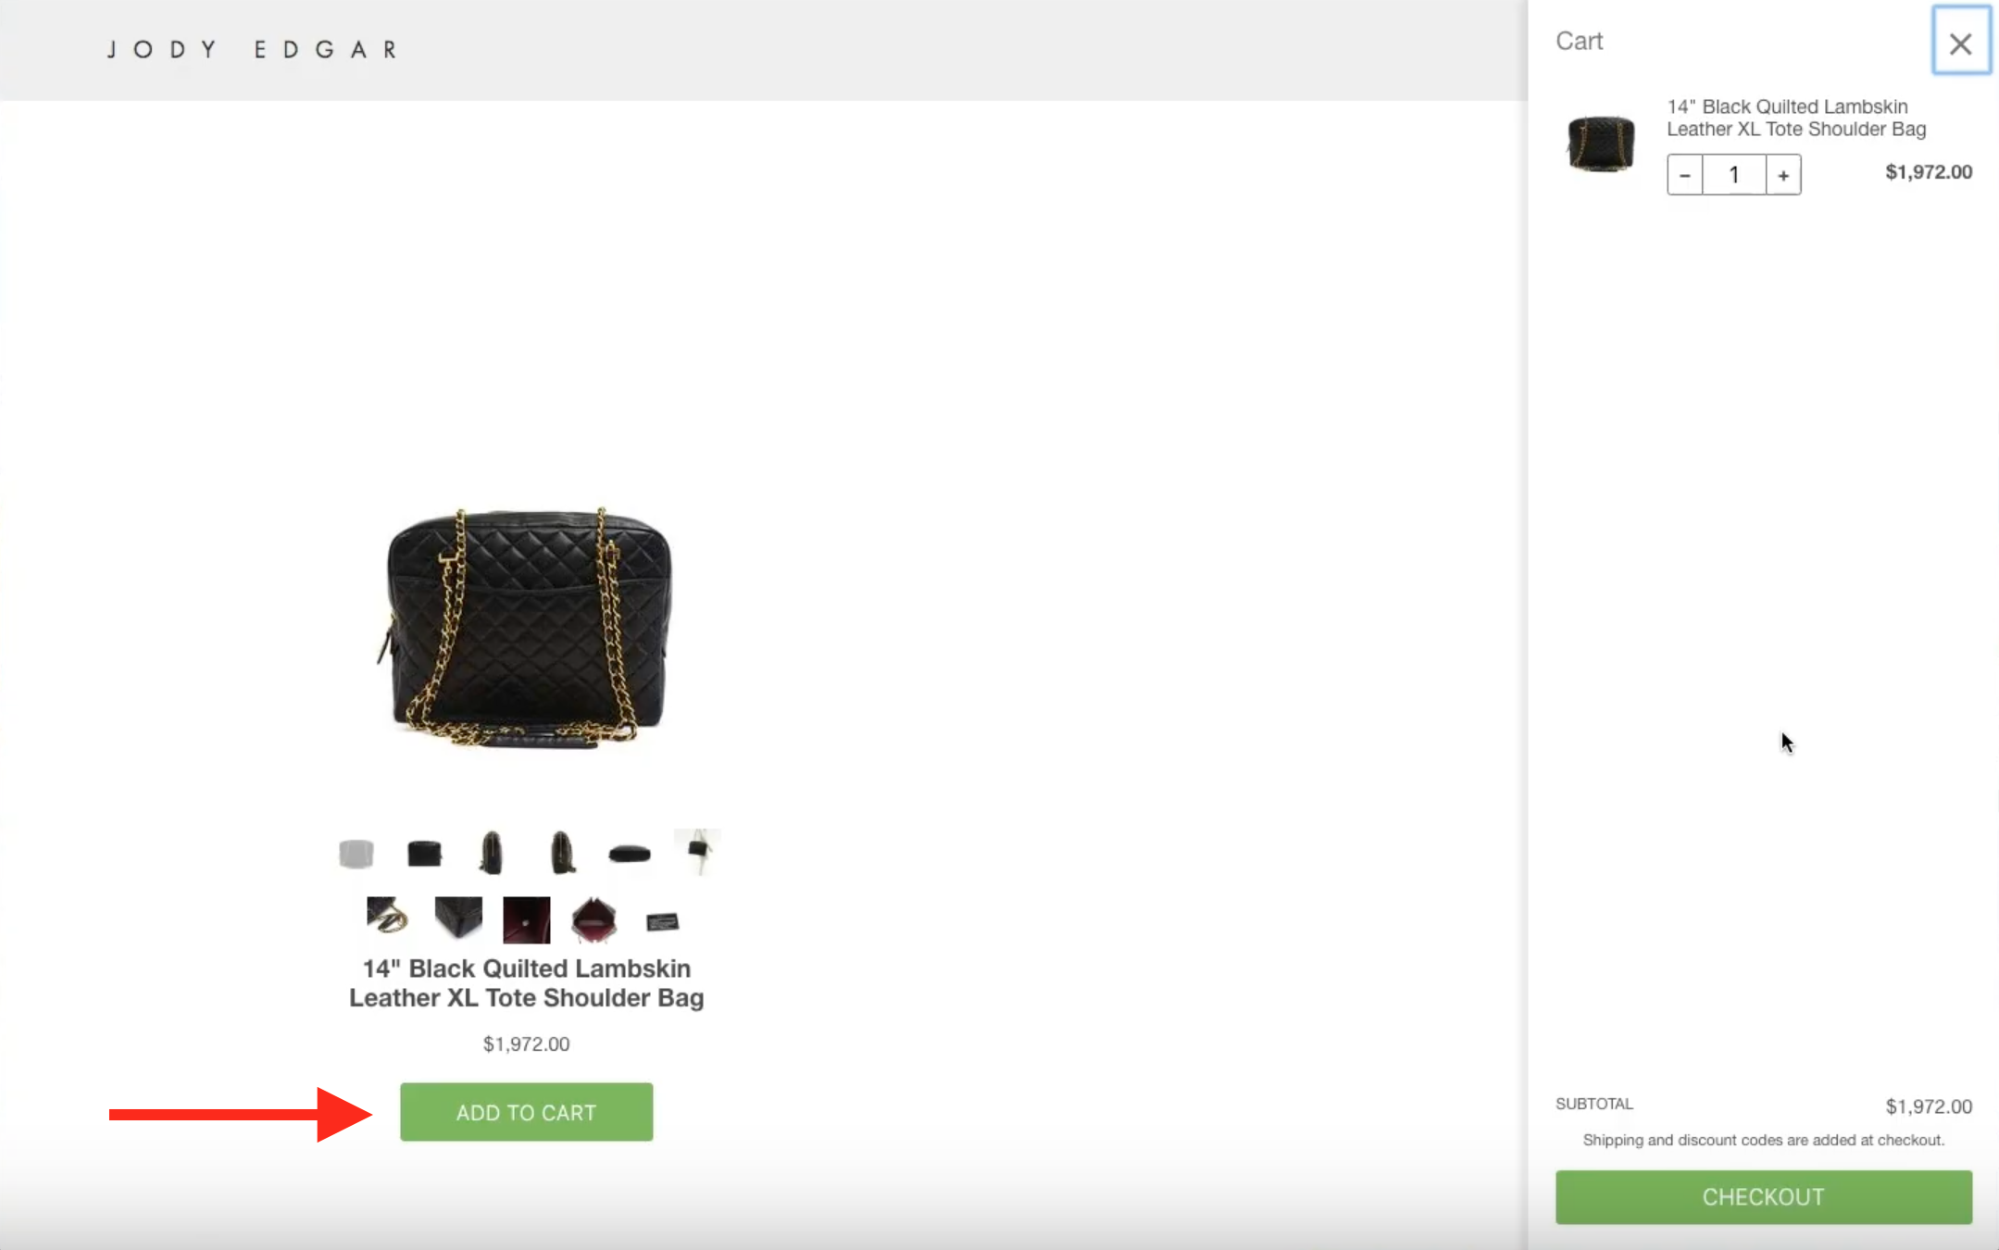 The Shopify Buy Button is installed and the checkout drawer slides out when a user clicks Add to Cart